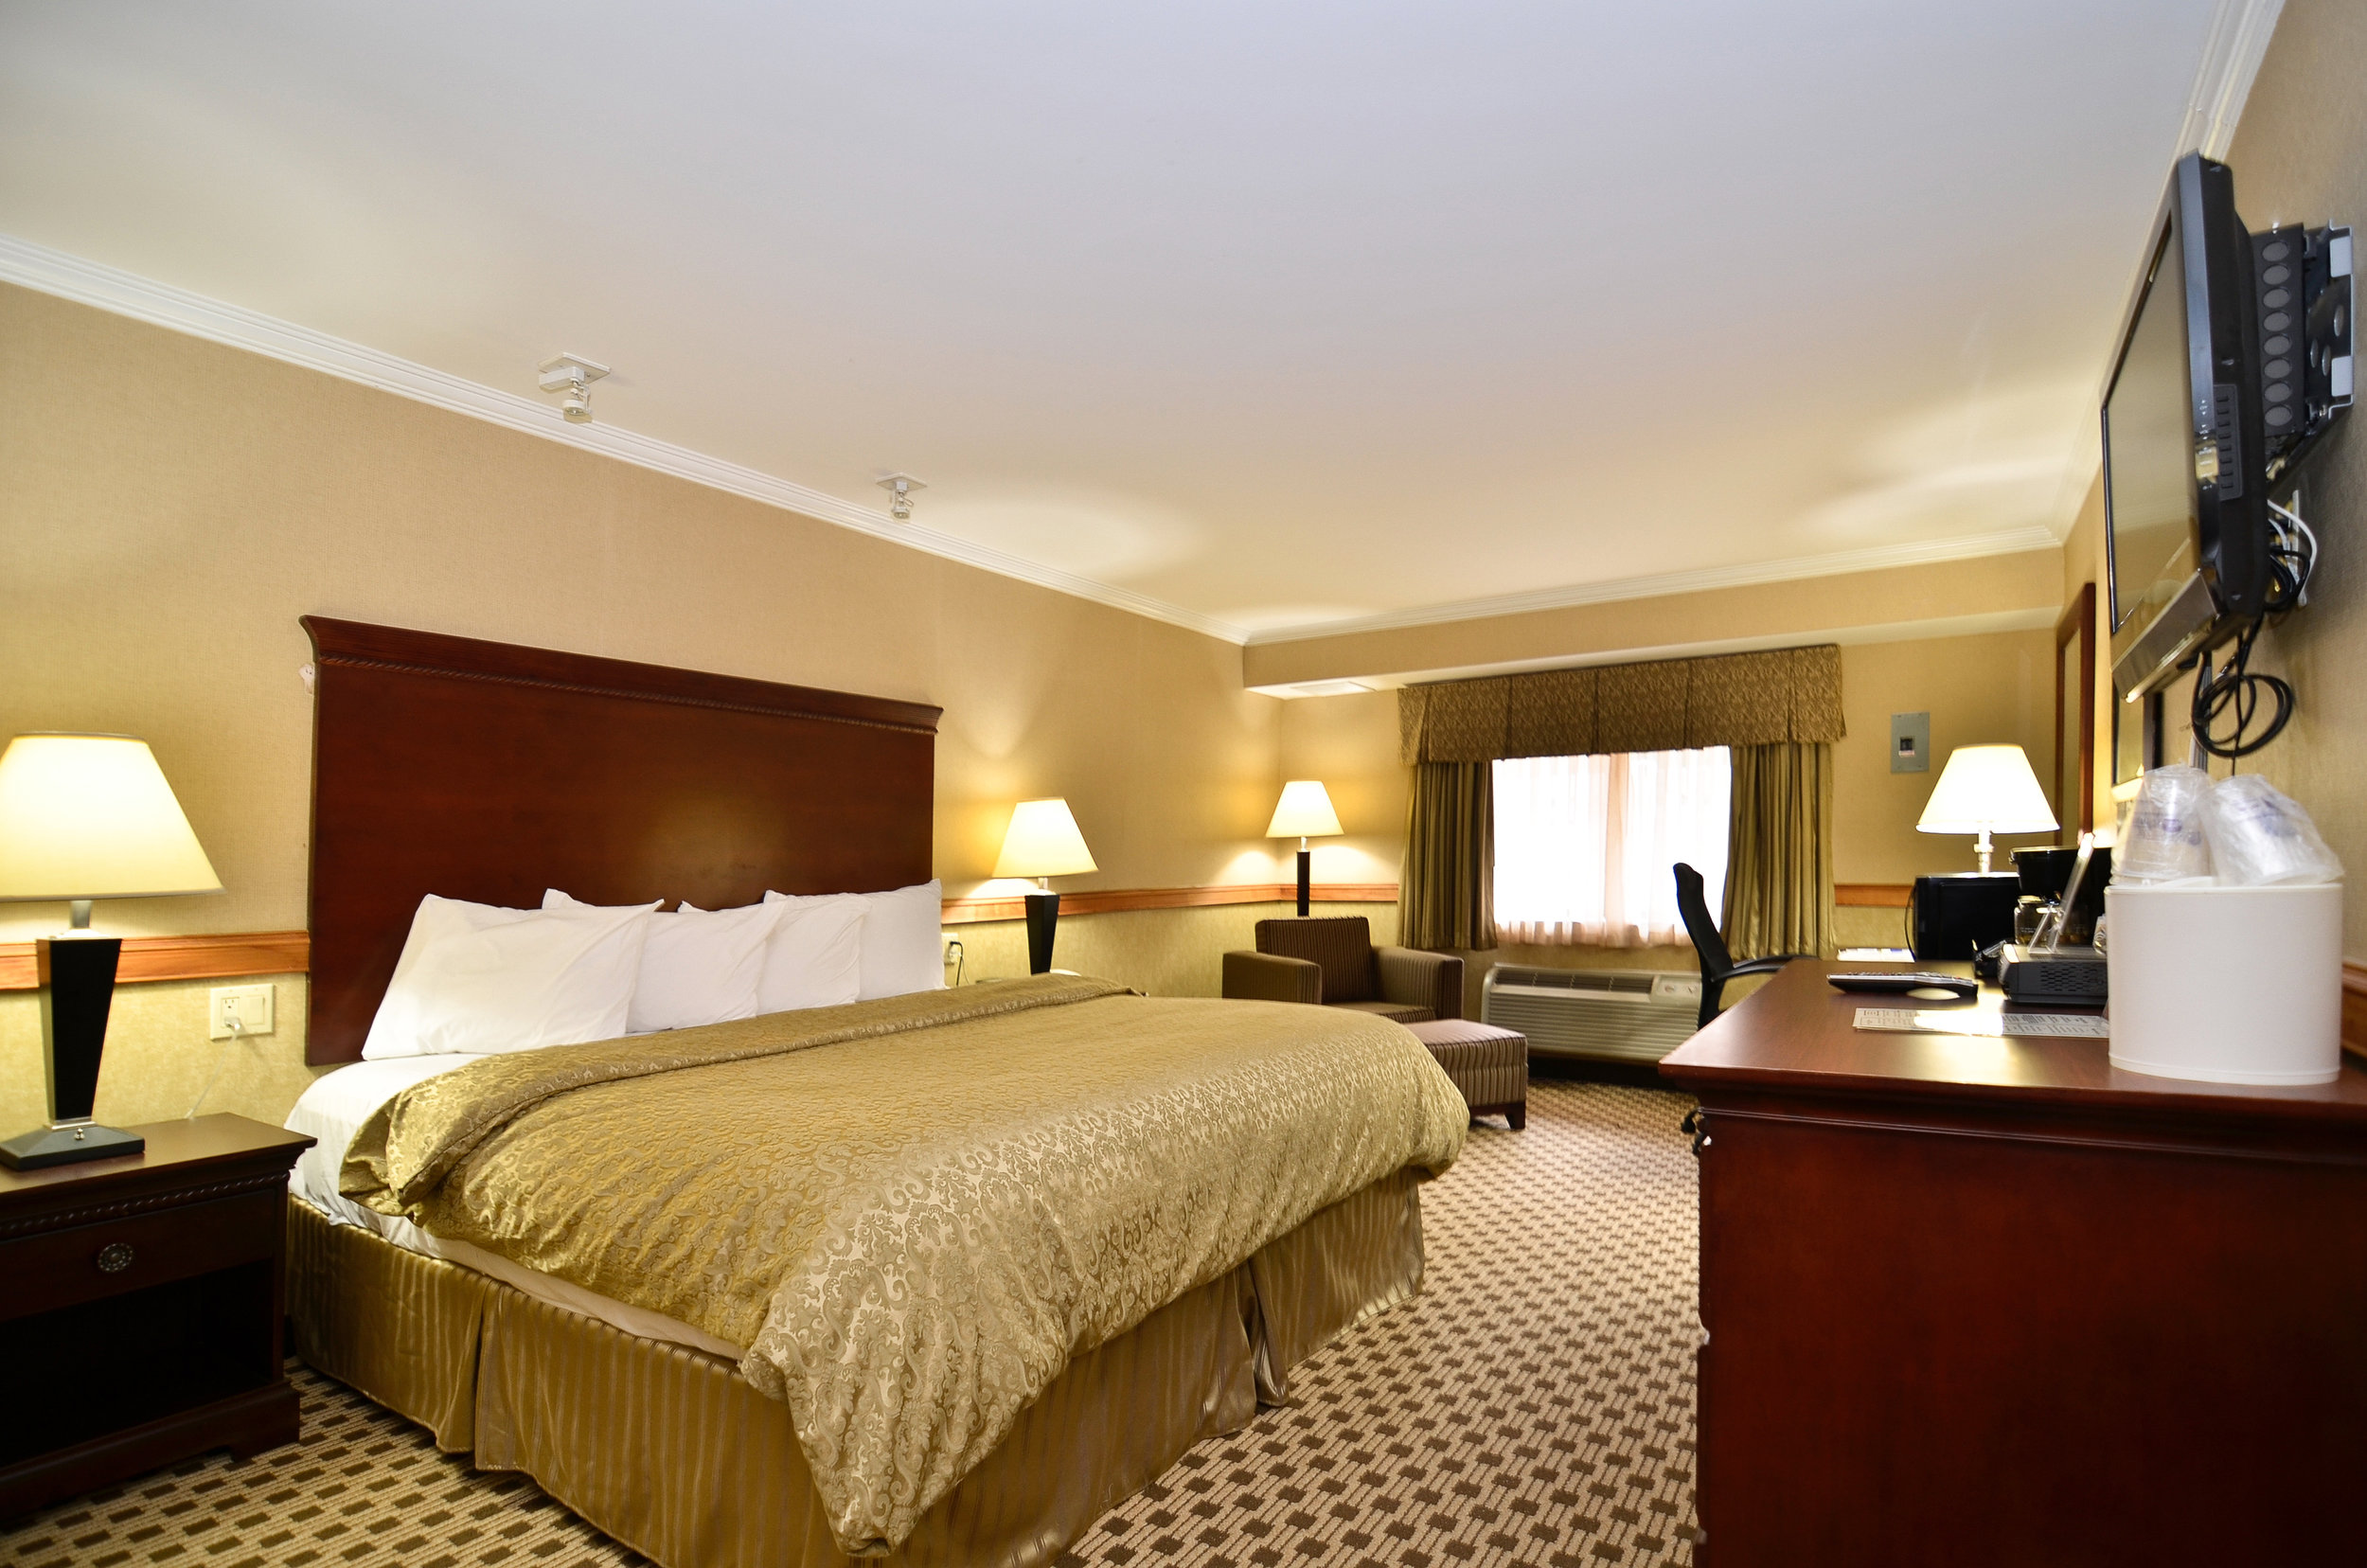 At Baymont Inn & Suites, our hotel accommodations include over 100 quality guest rooms & suites with all the latest amenities. Business travelers will love our Business Plus Suite, while those who are in town for an extended stay […]   CONTINUE READING